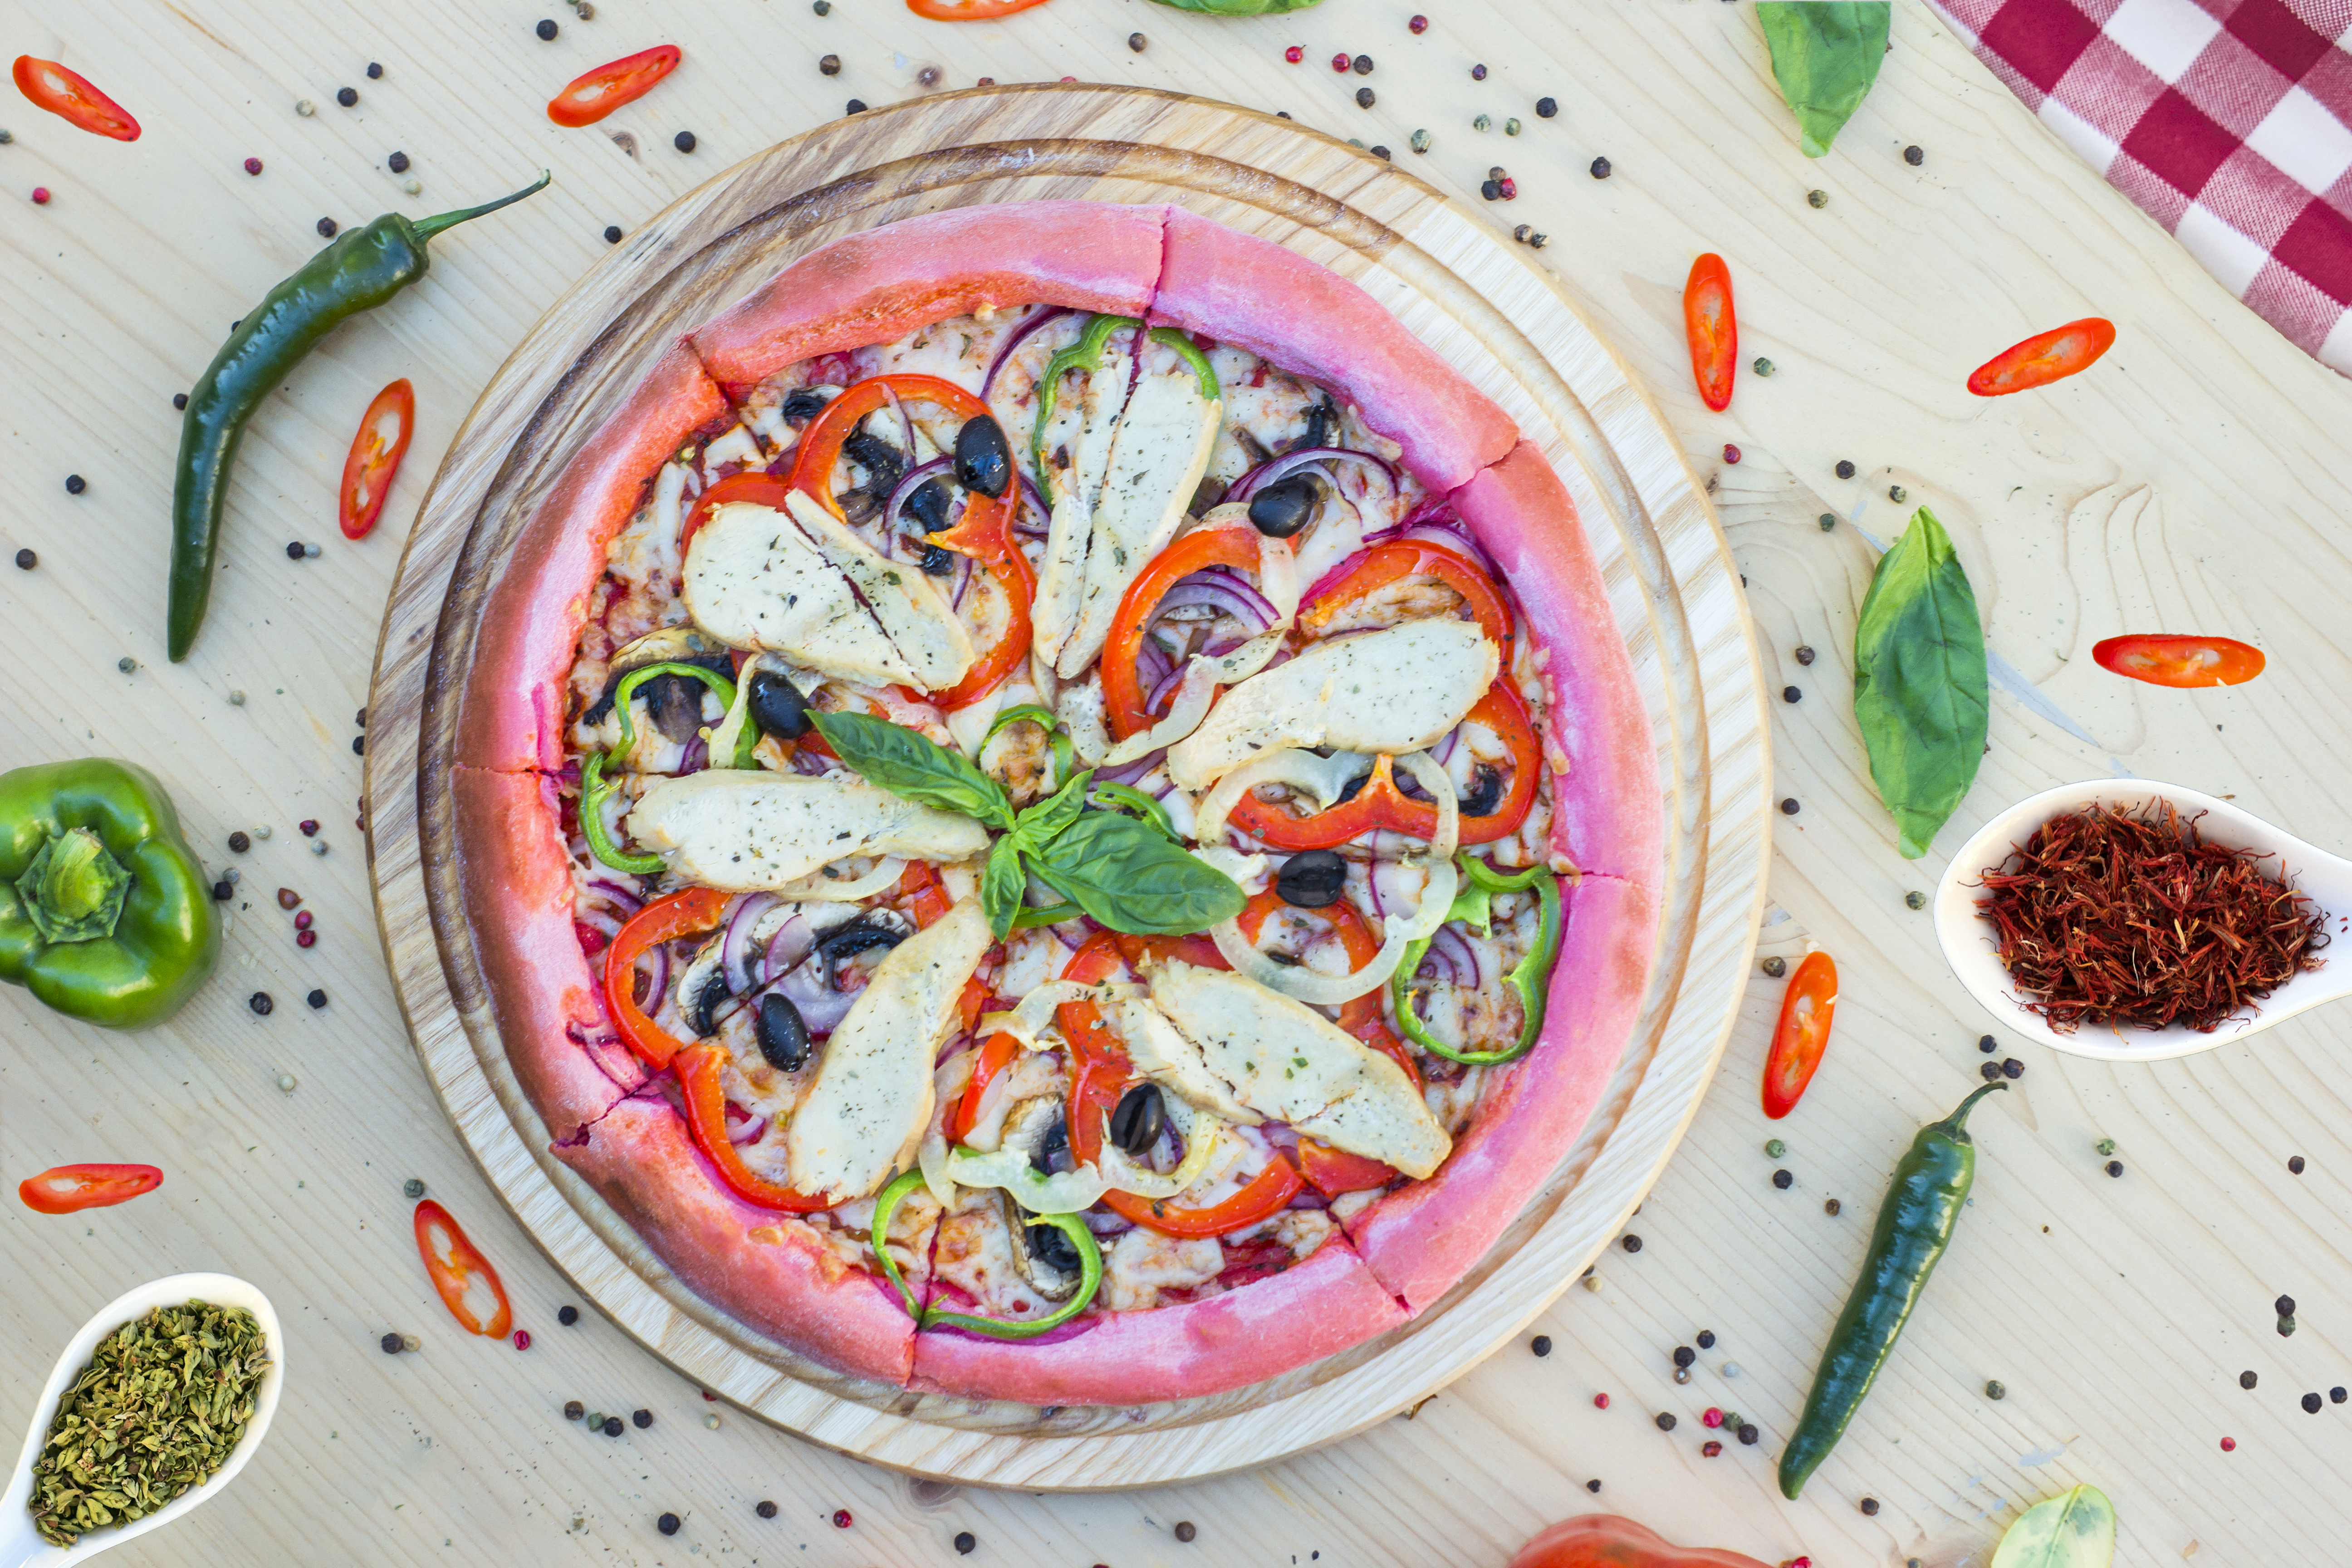 A Colorful Sliced Pizza